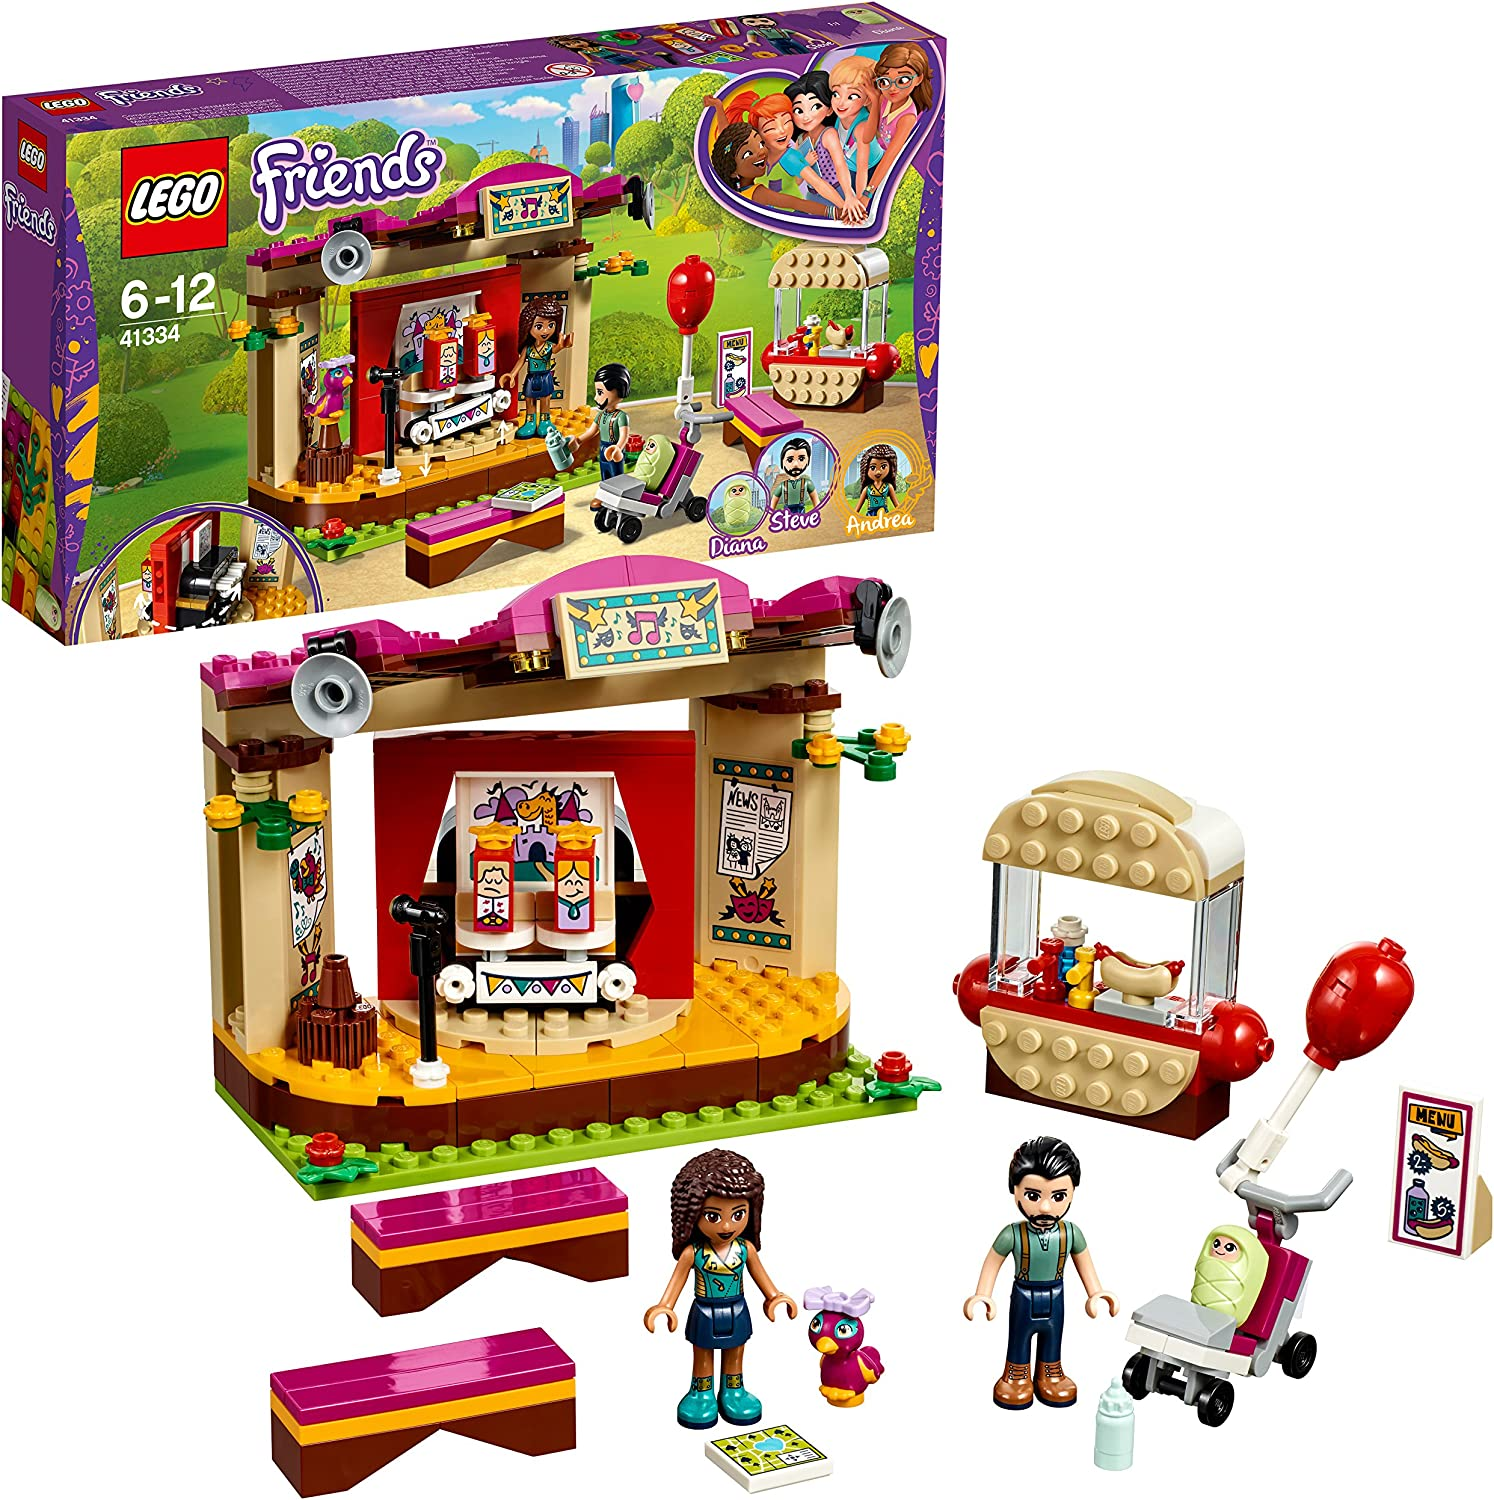 LEGO UK - 41334 Friends Andrea's Park Performance Toy for Girls and Boys